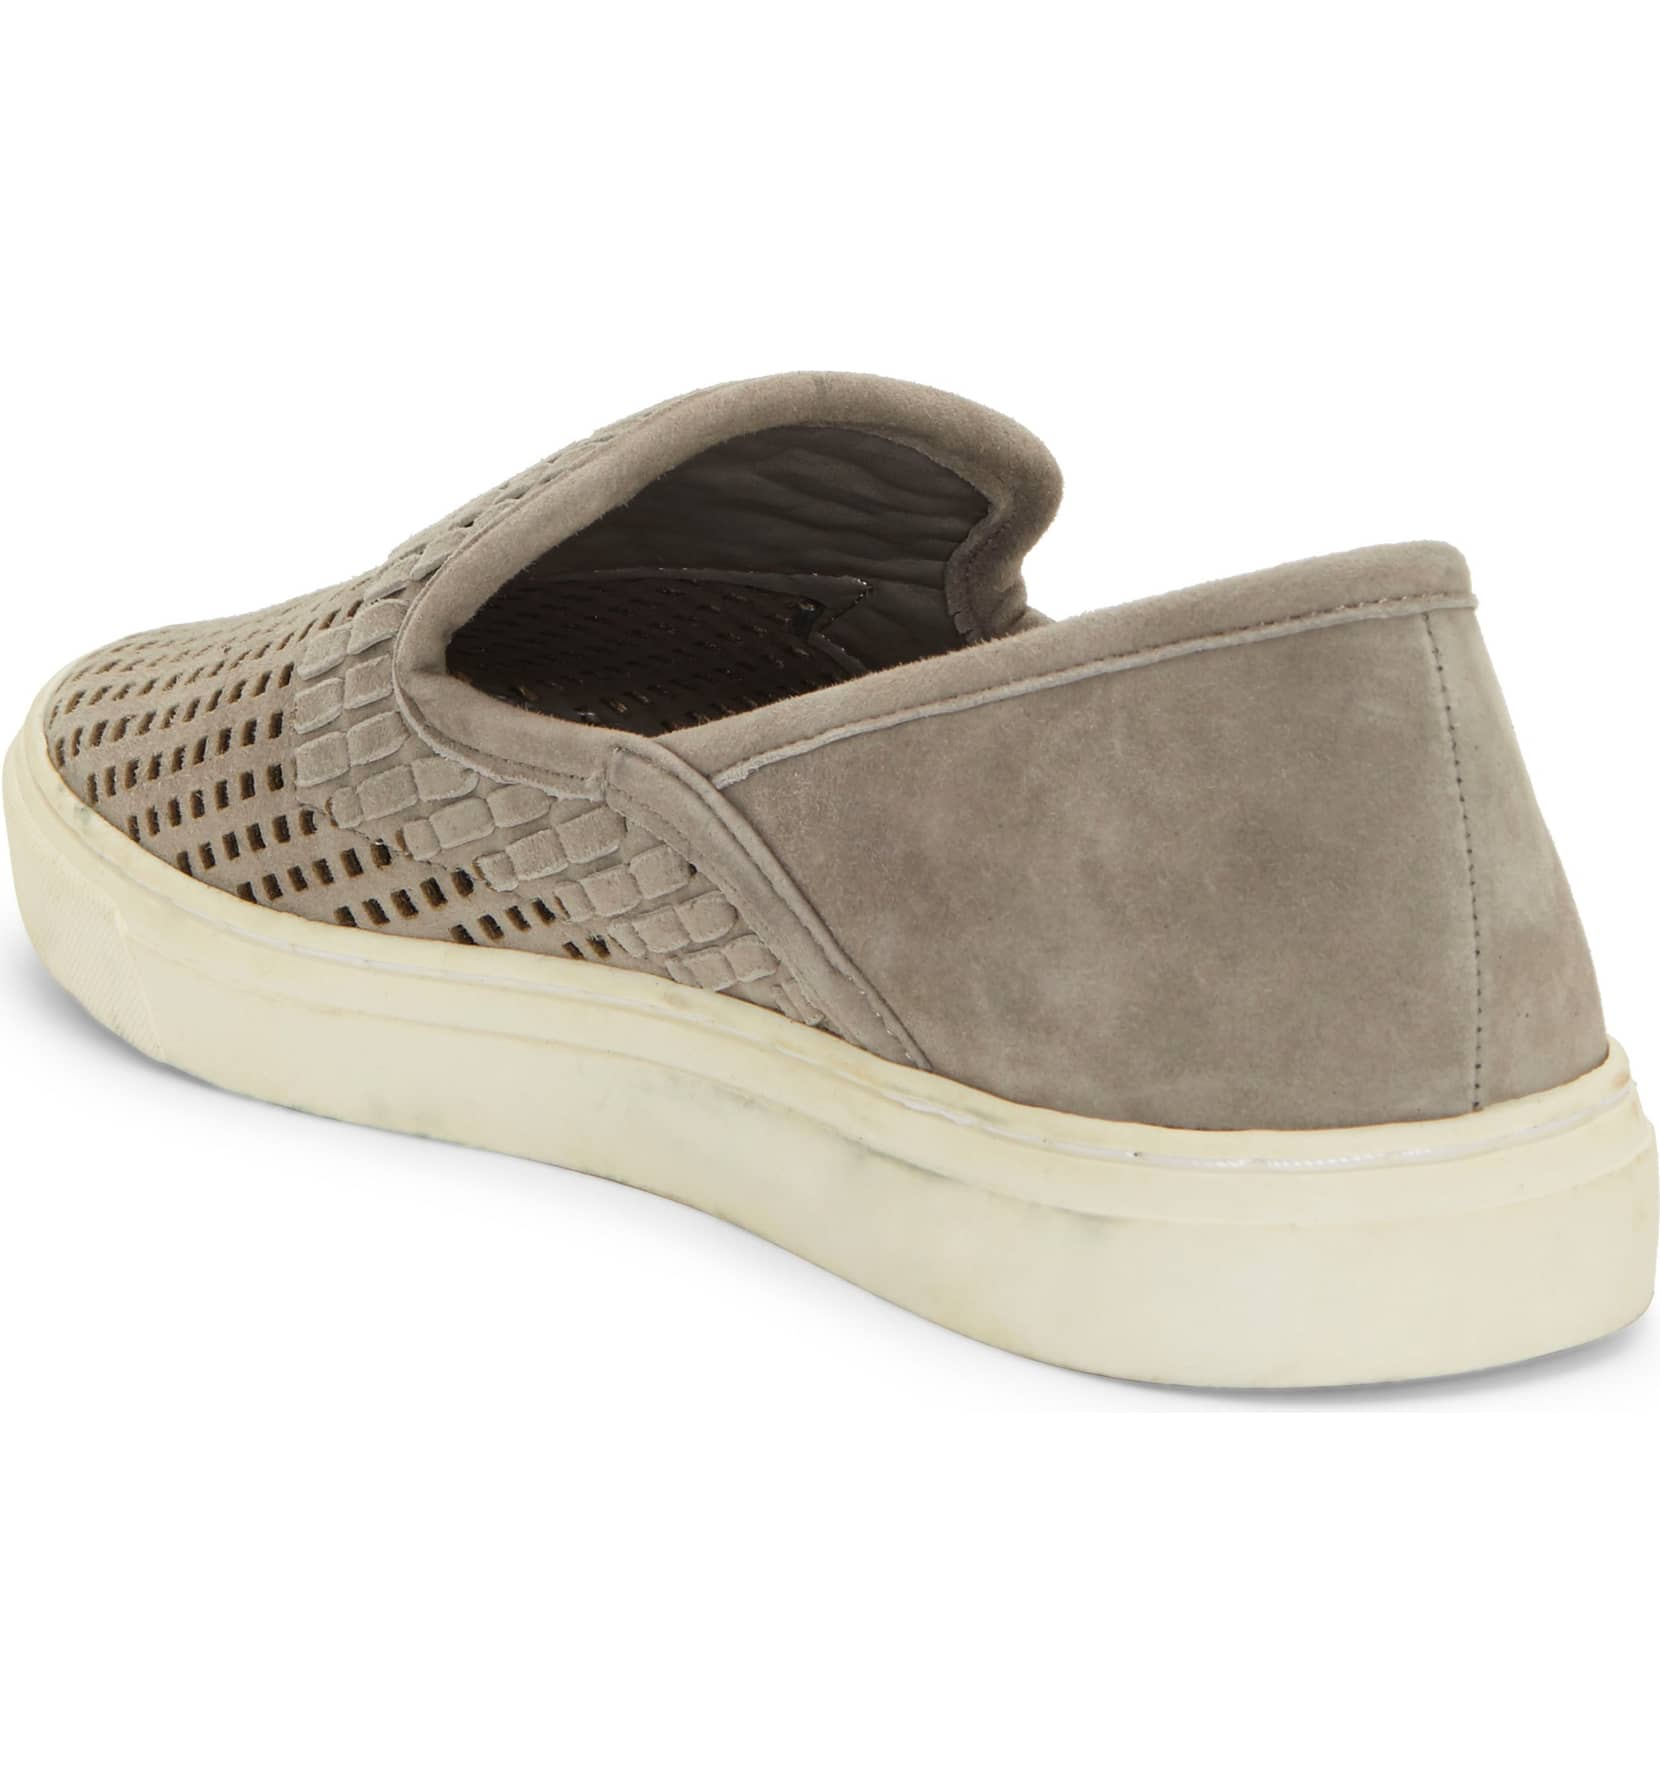 Vince-Camuto-Bristie-Storm-Grey-Leather-Woven-White-Sole-Slip-On-Sneakers thumbnail 29